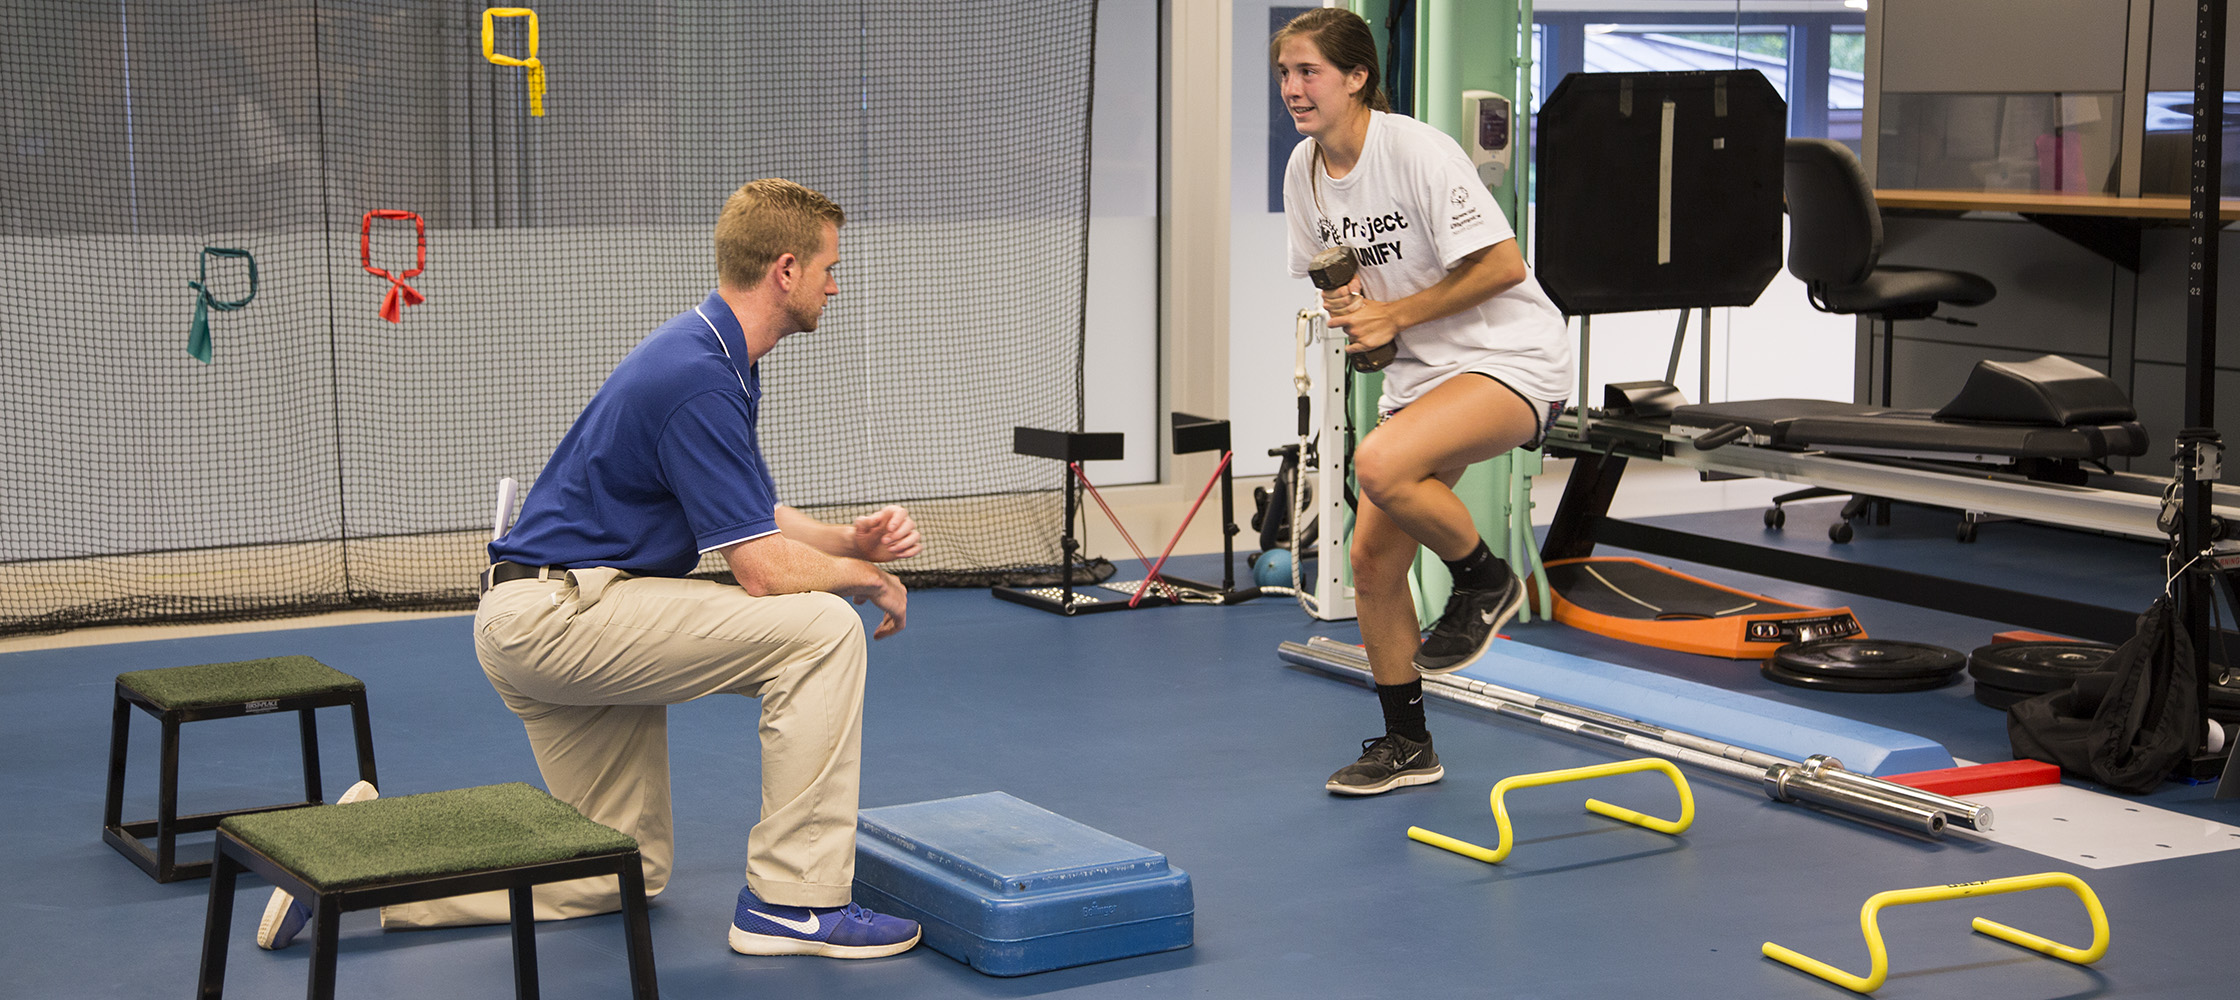 Jesse von Arx works with Duke physical therapist Patrick Chasse.